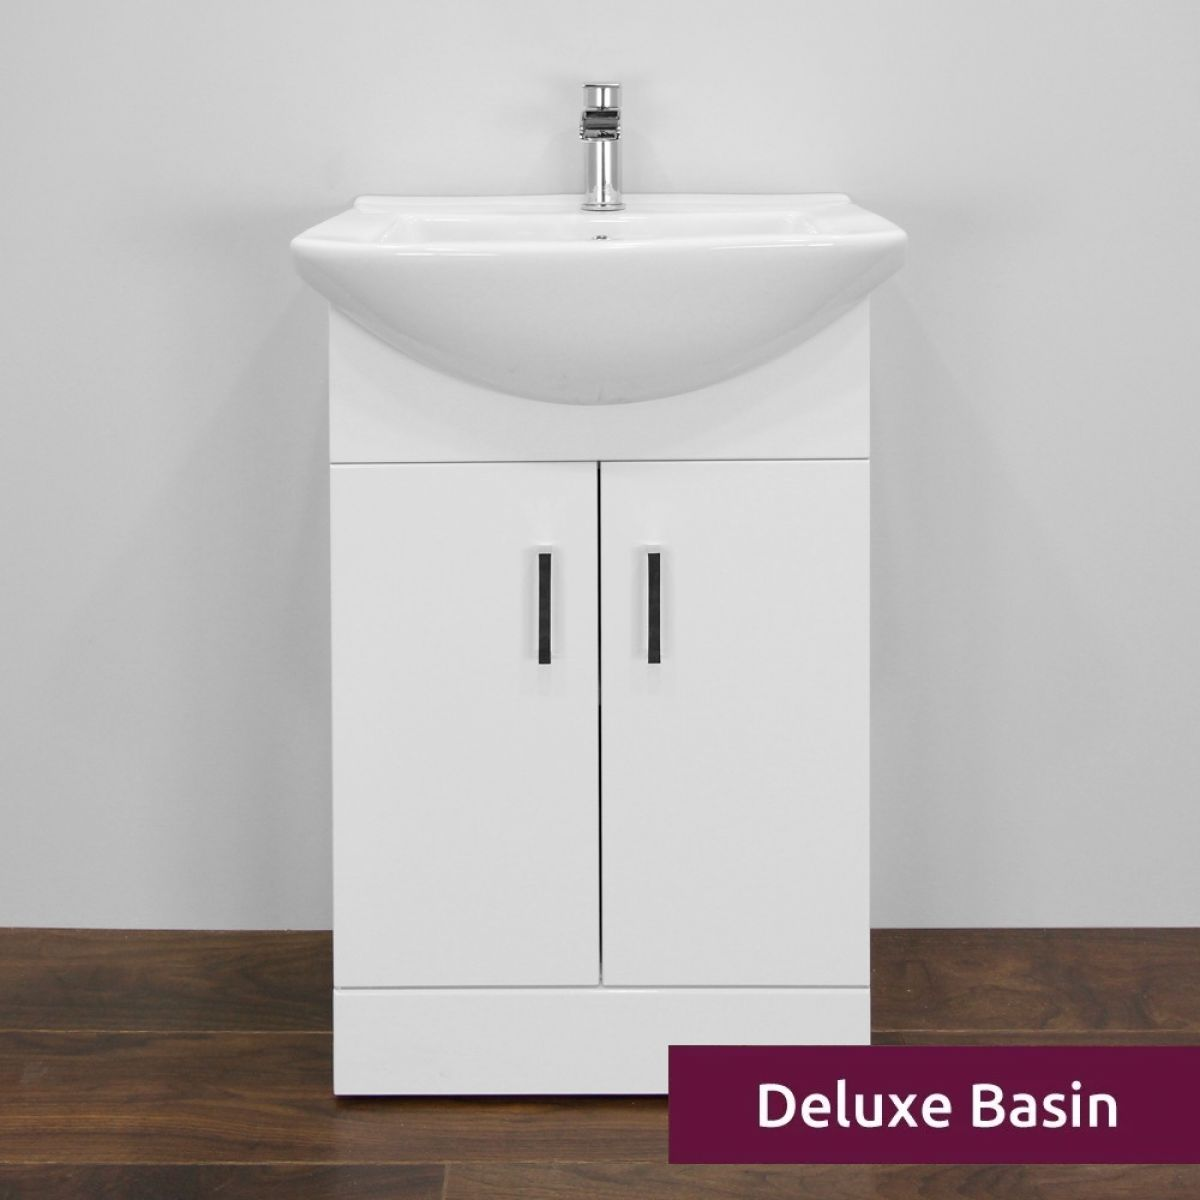 Premier High Gloss White Vanity Unit 550mm with Deluxe Basin Front